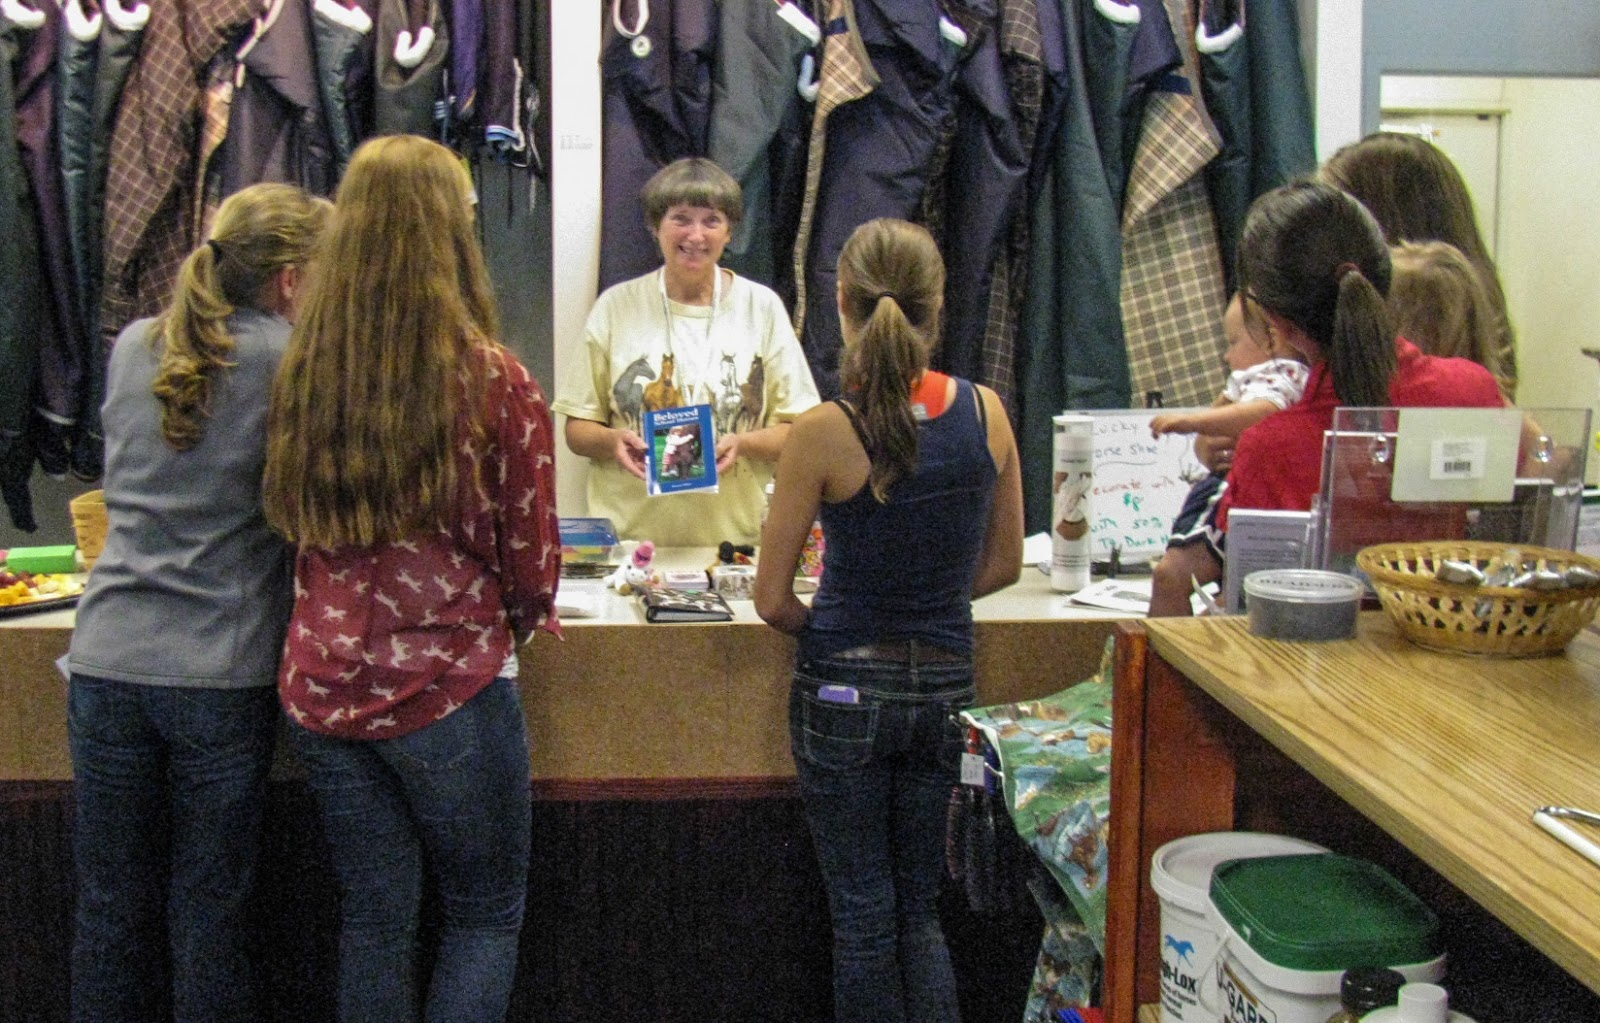 Author Sharon Miner Events: Photos from Judy's Tack Shops in